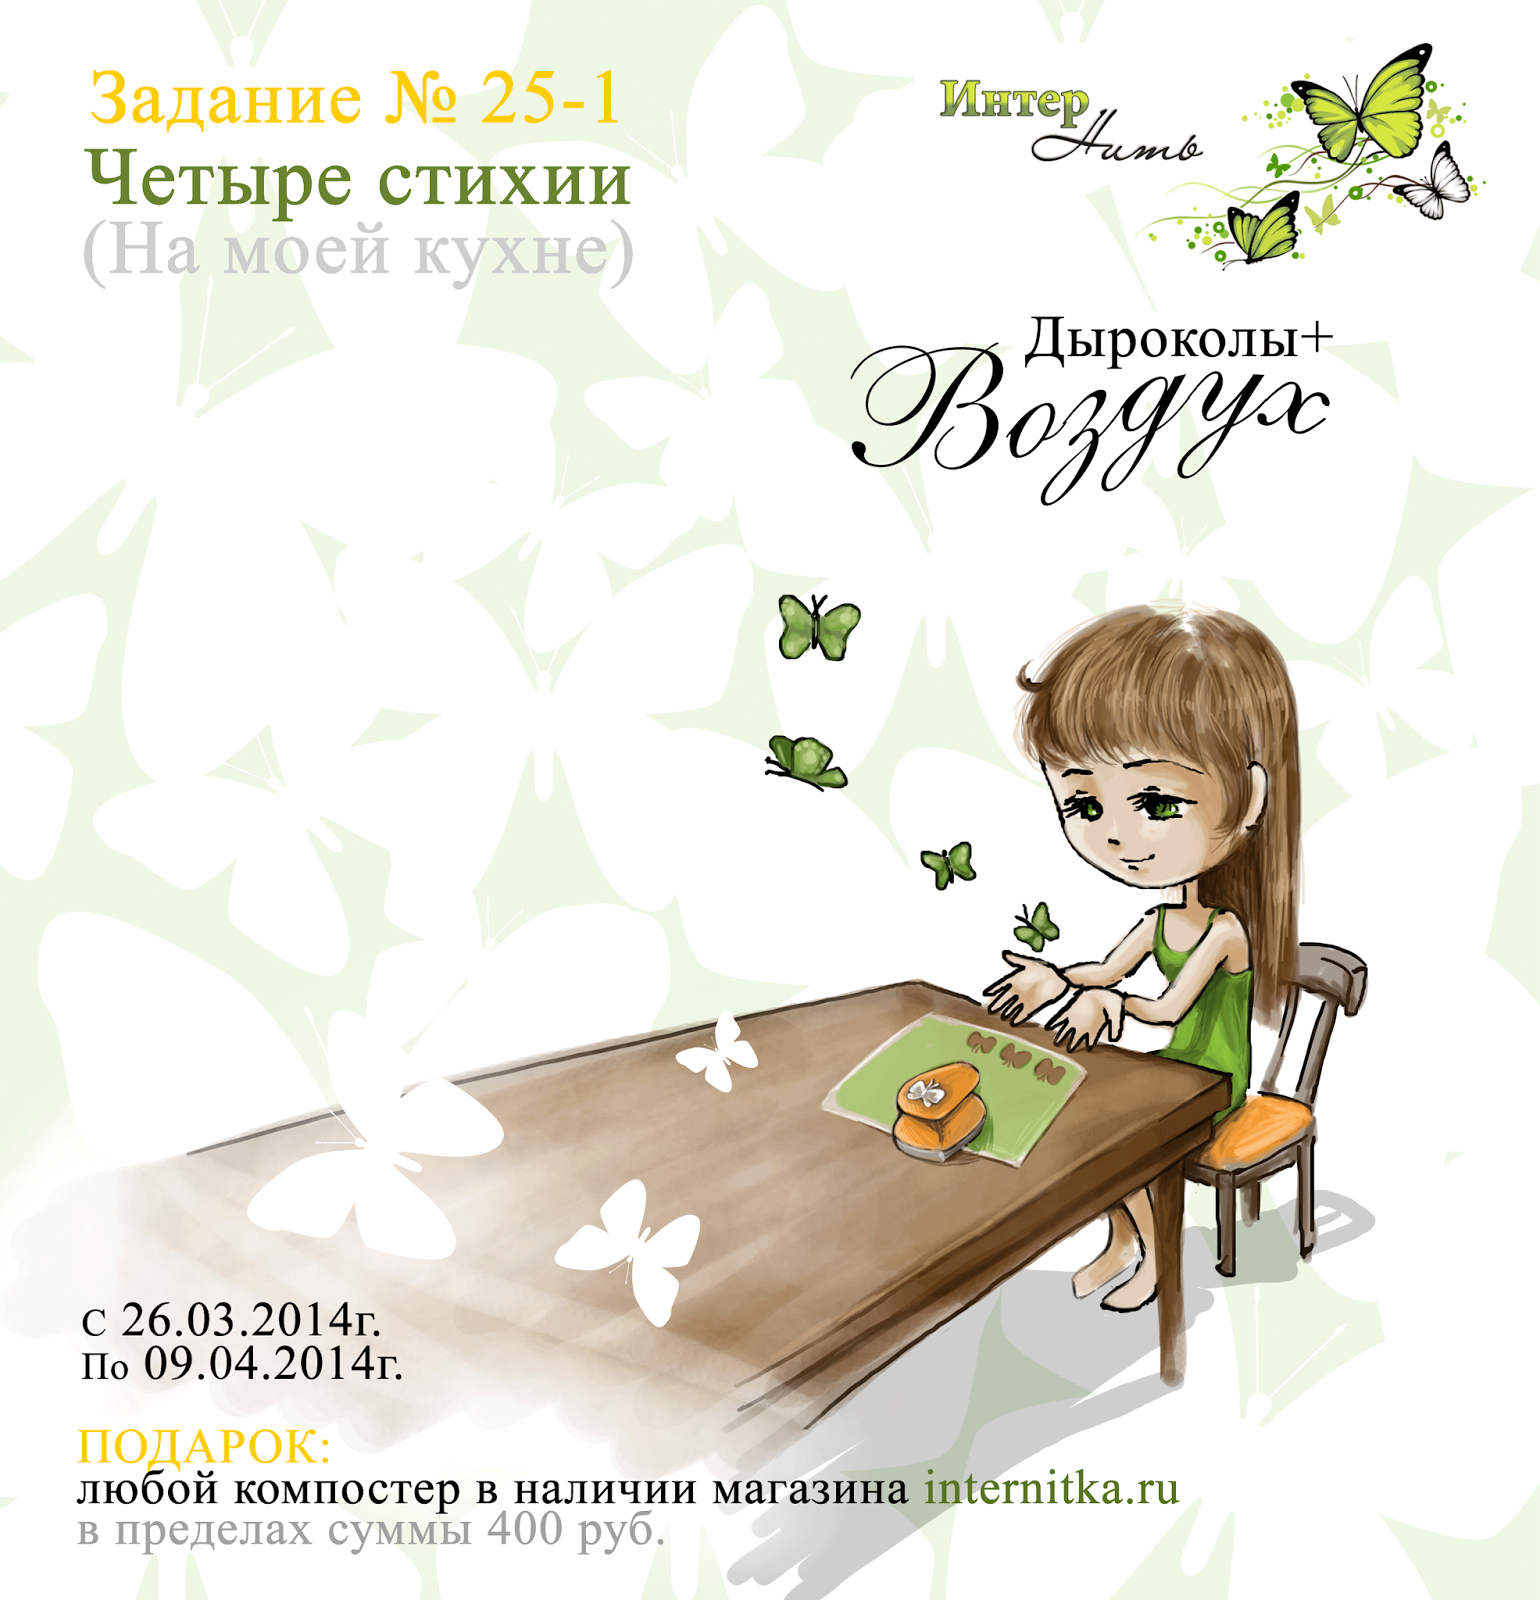 http://internitka.blogspot.ru/2014/03/25.html